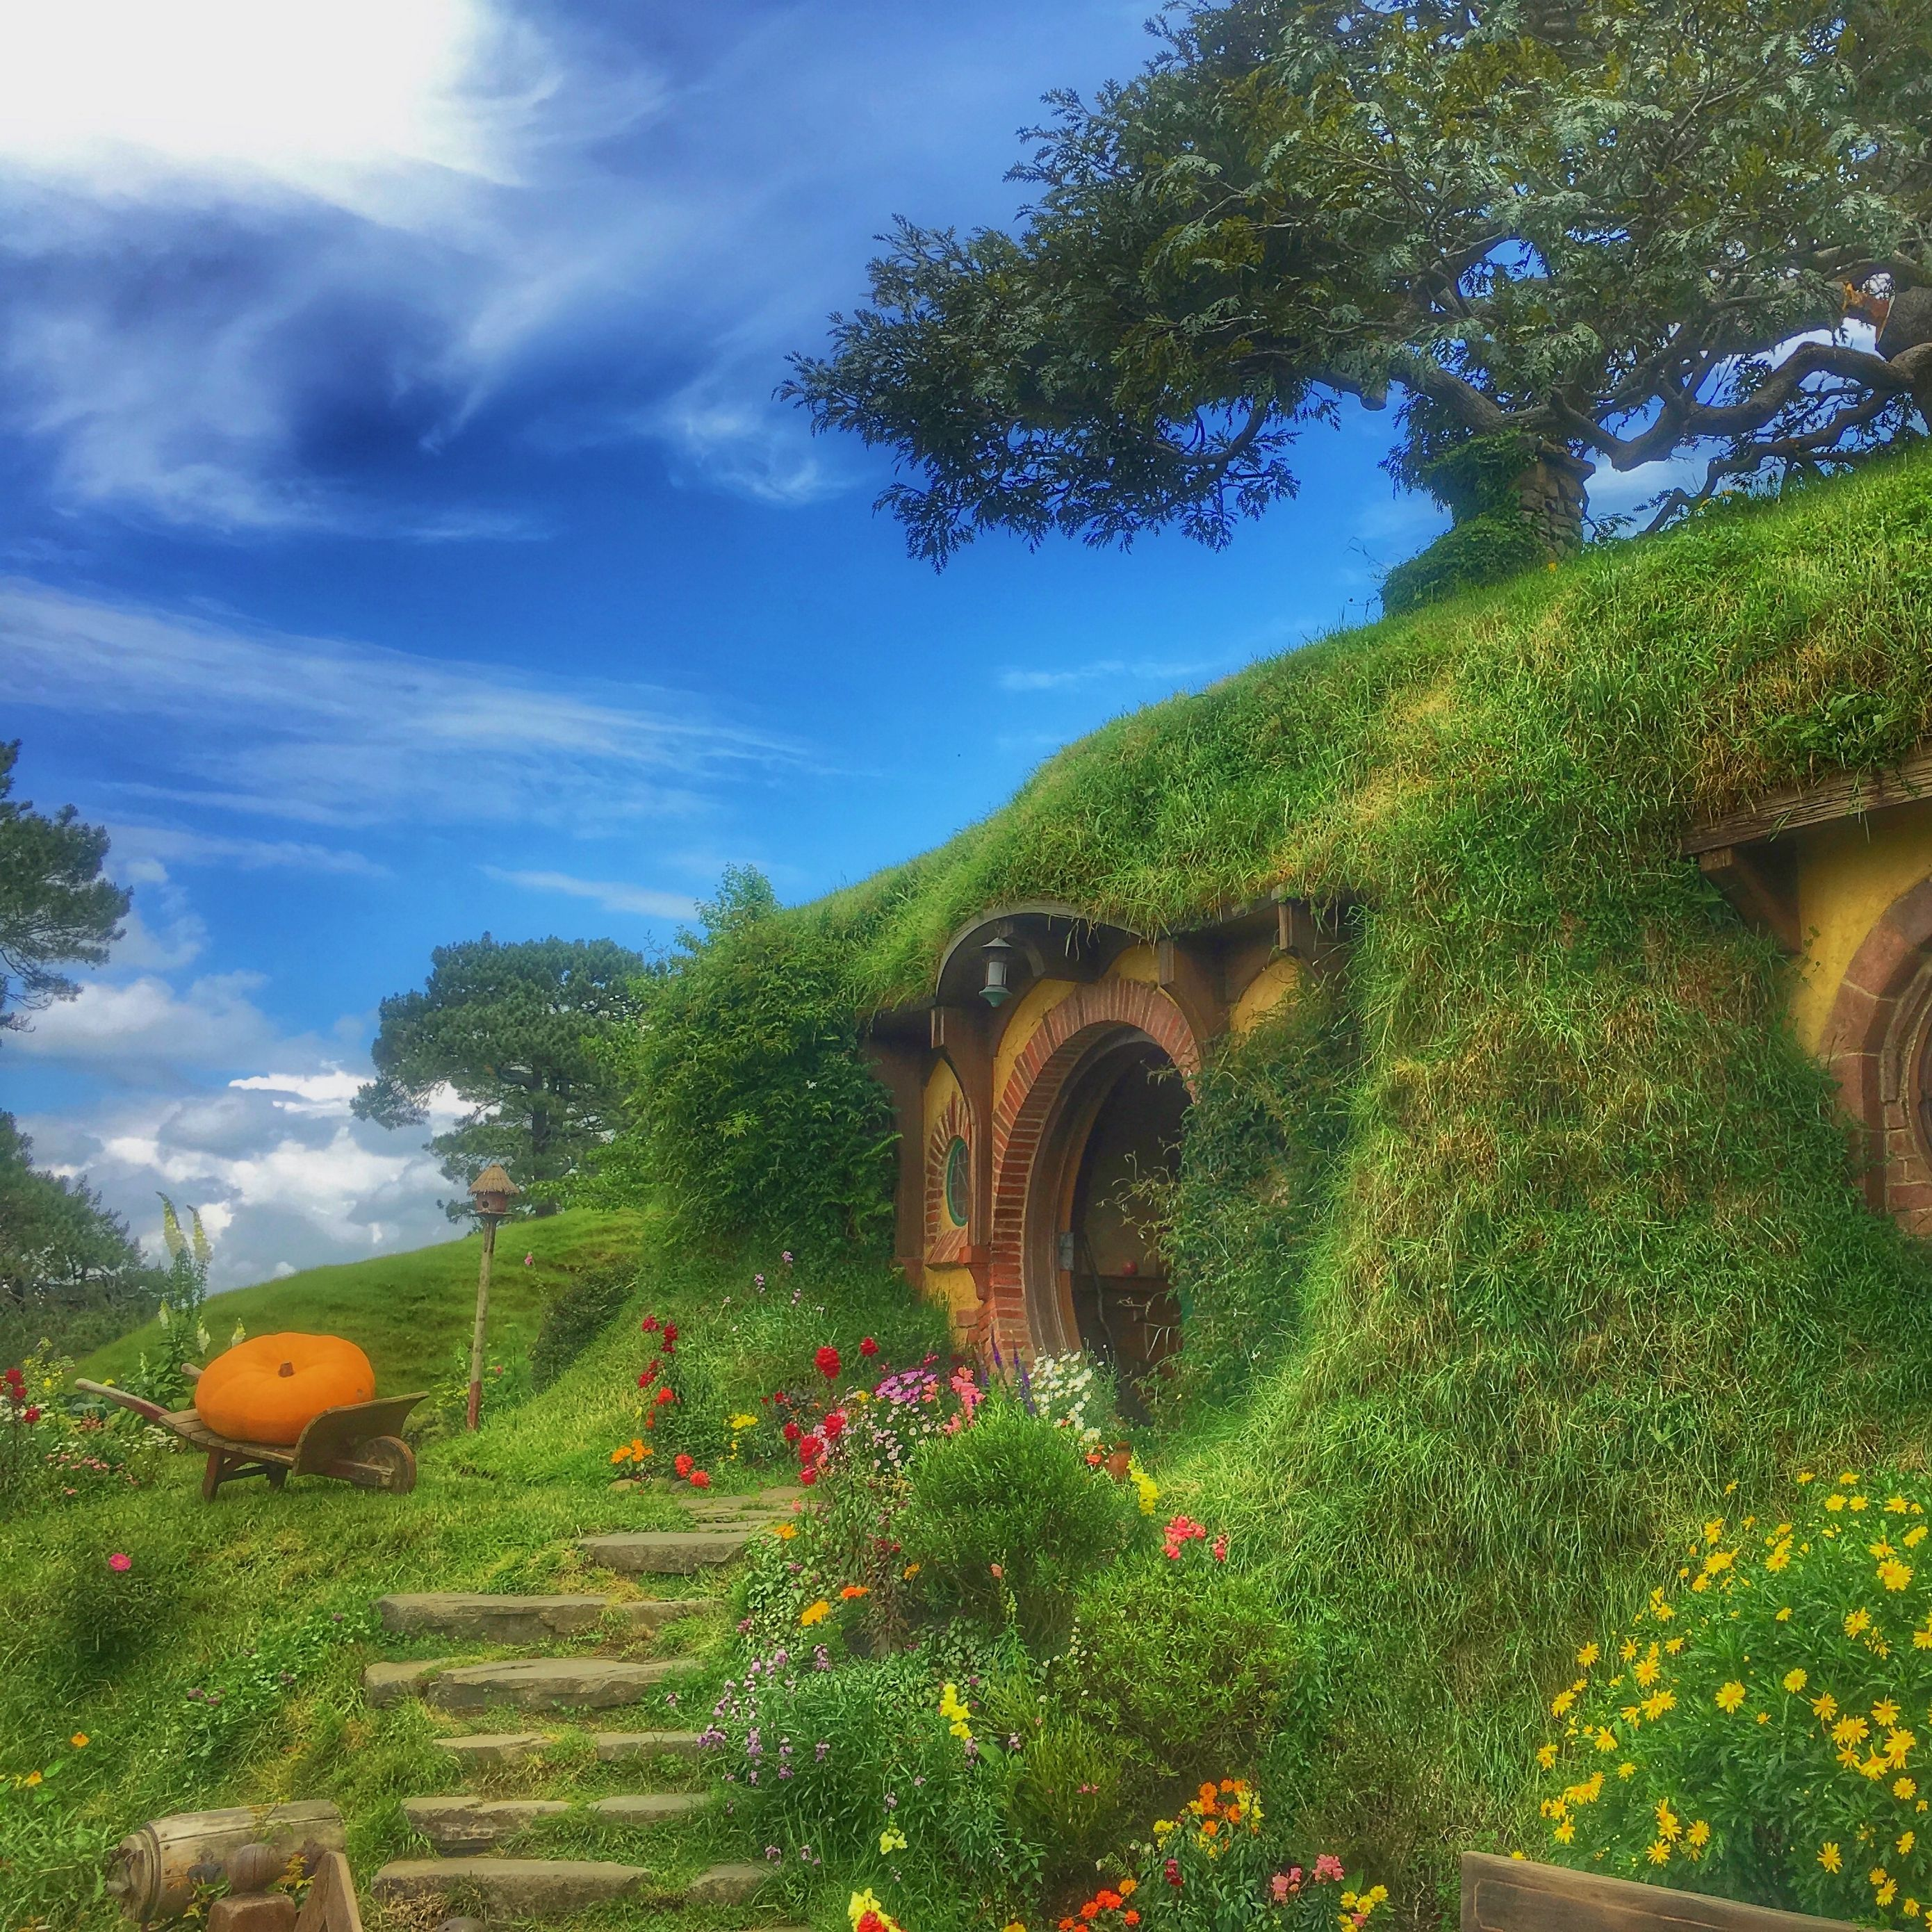 Download wallpapers 2780x2780 hobbiton movie set, forest house